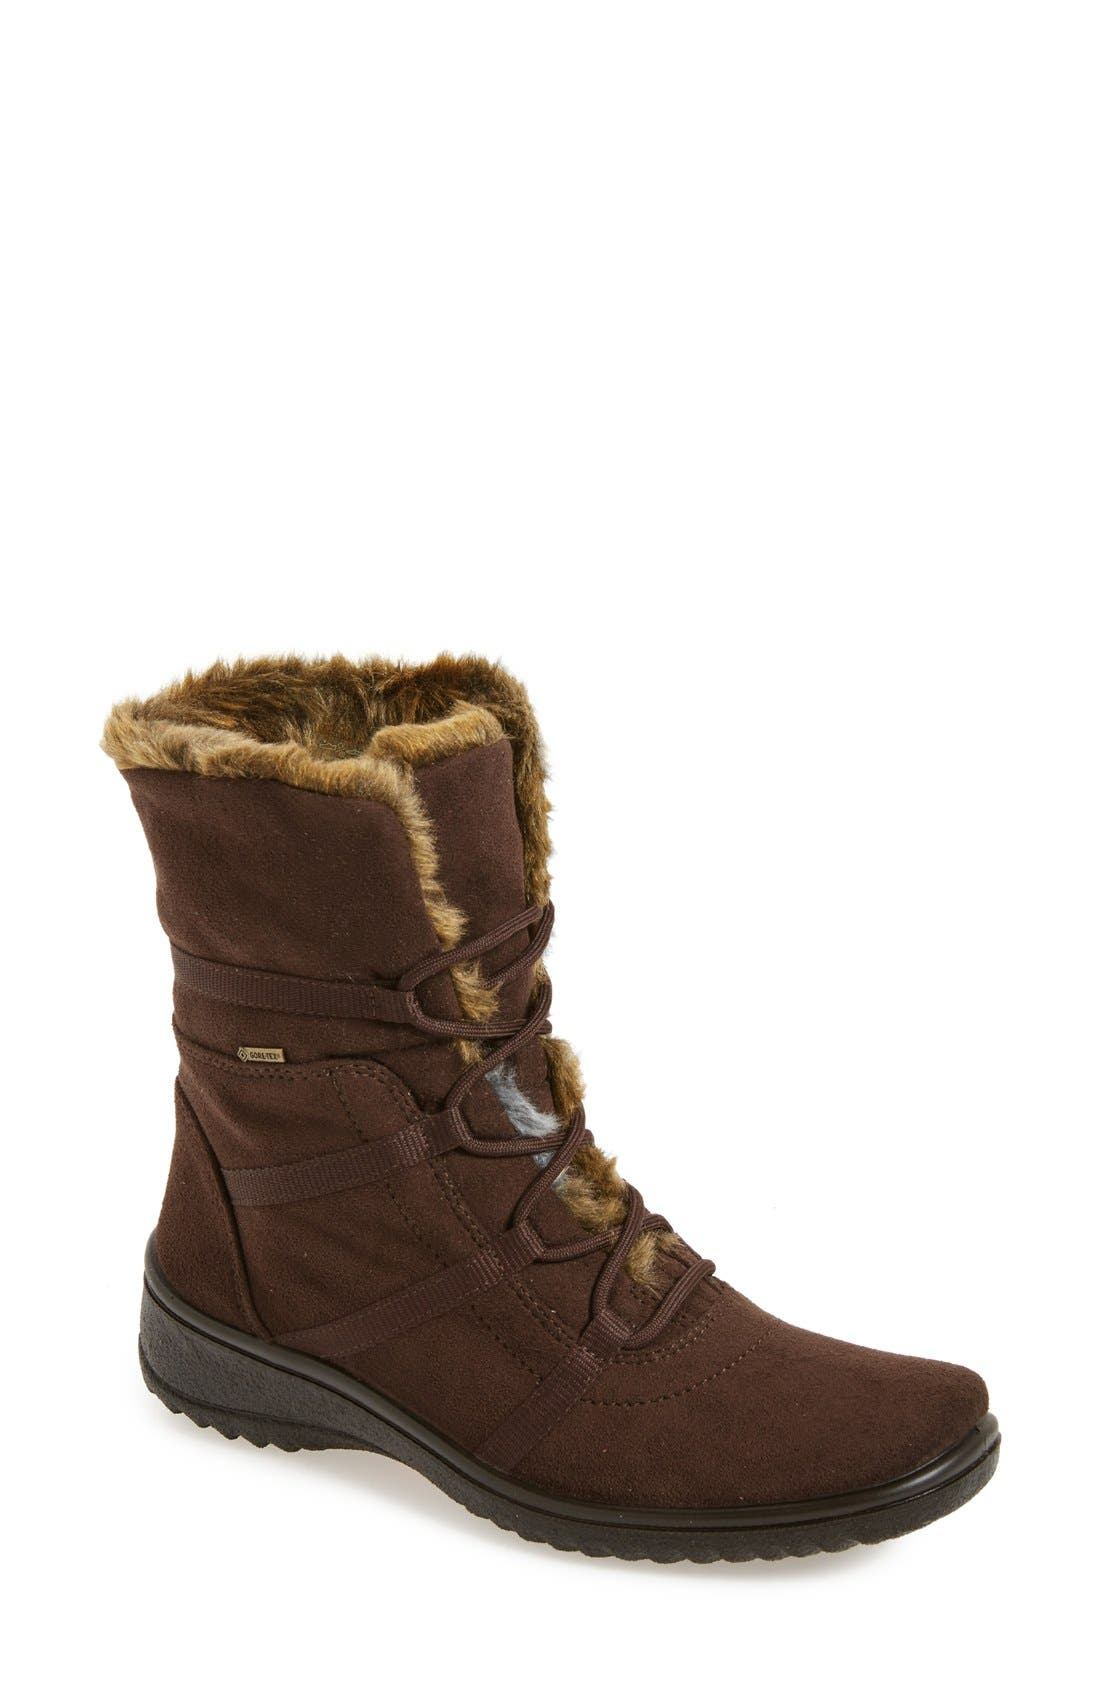 'Magaly' Waterproof Gore-Tex<sup>®</sup> Faux Fur Boot,                             Main thumbnail 1, color,                             Brown Fabric